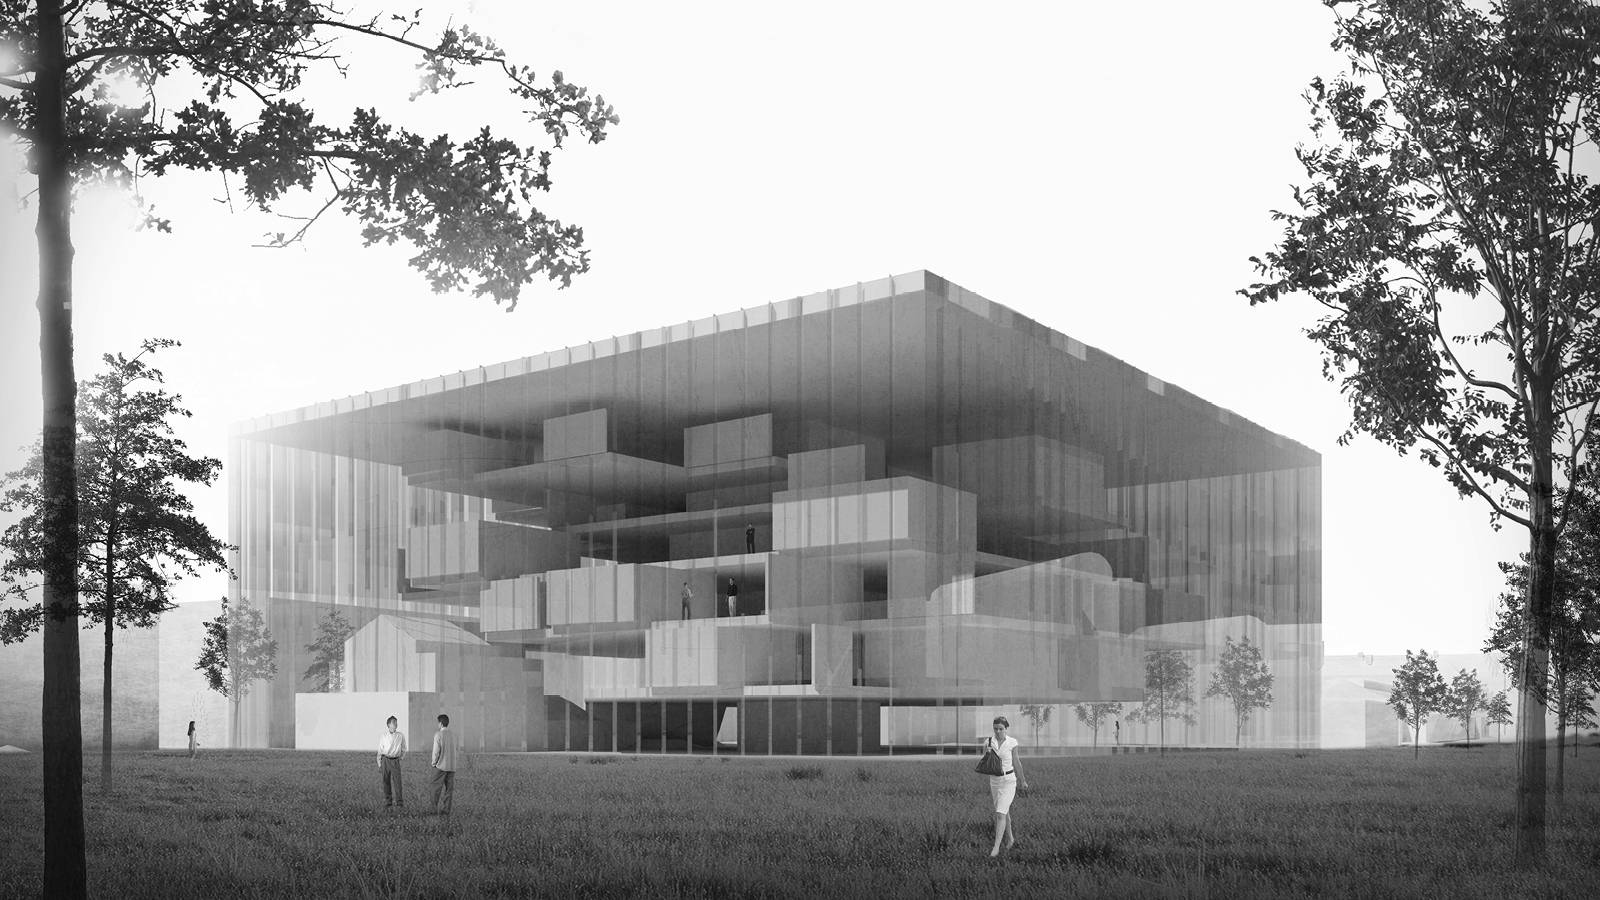 EXTERIOR PERSPECTIVE - NEW AARCH – CREATIVE CLOUD - SPOL Architects